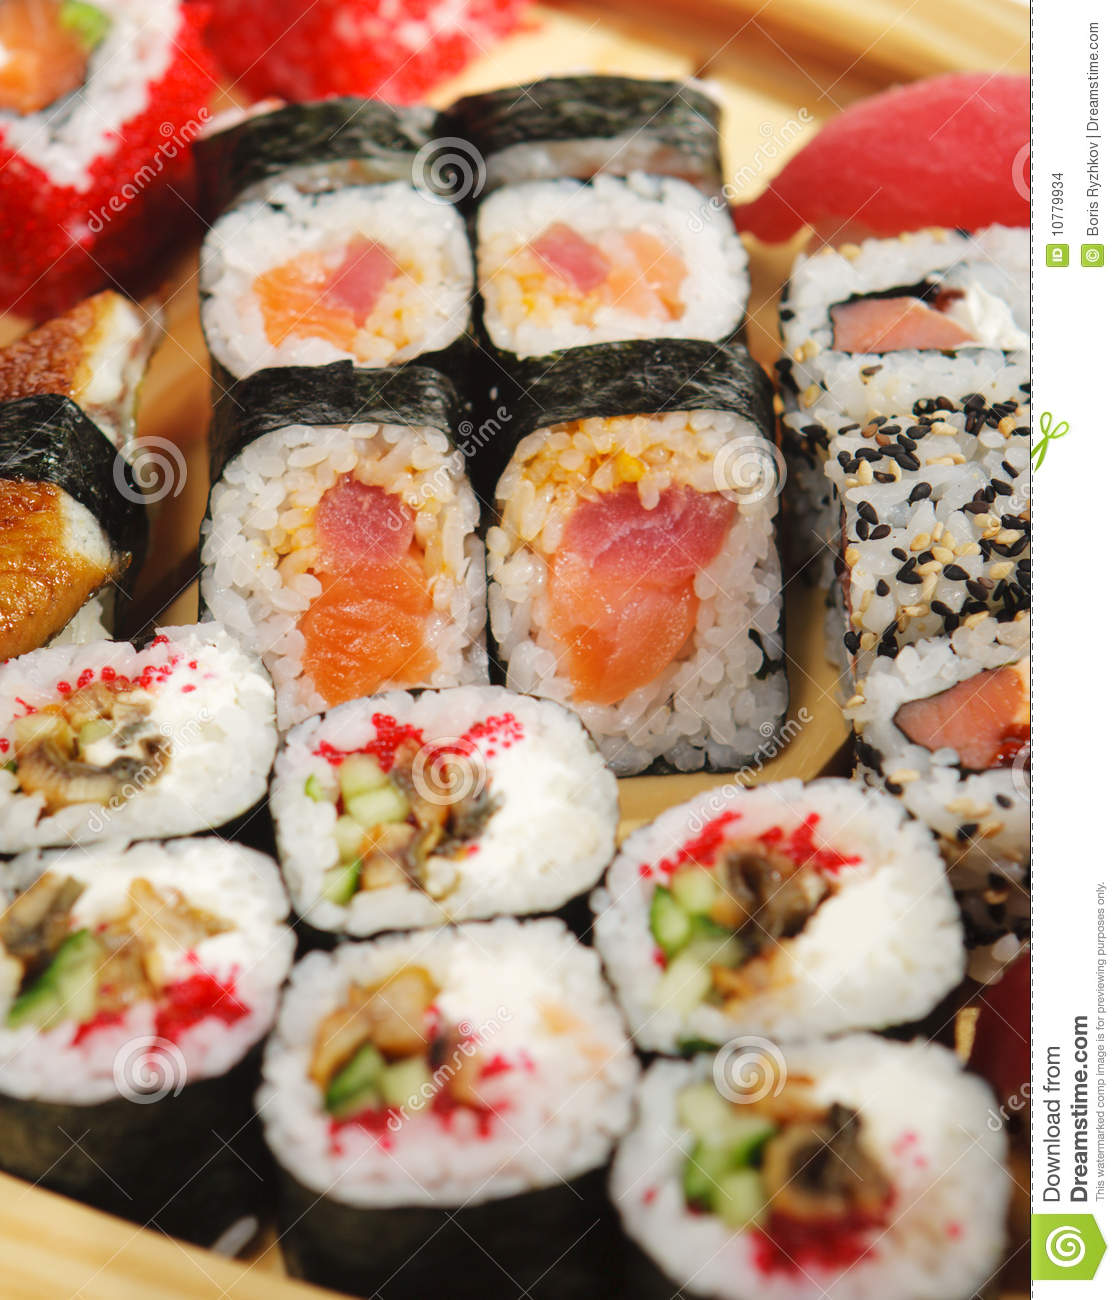 Japanese cuisine - various type of sushi